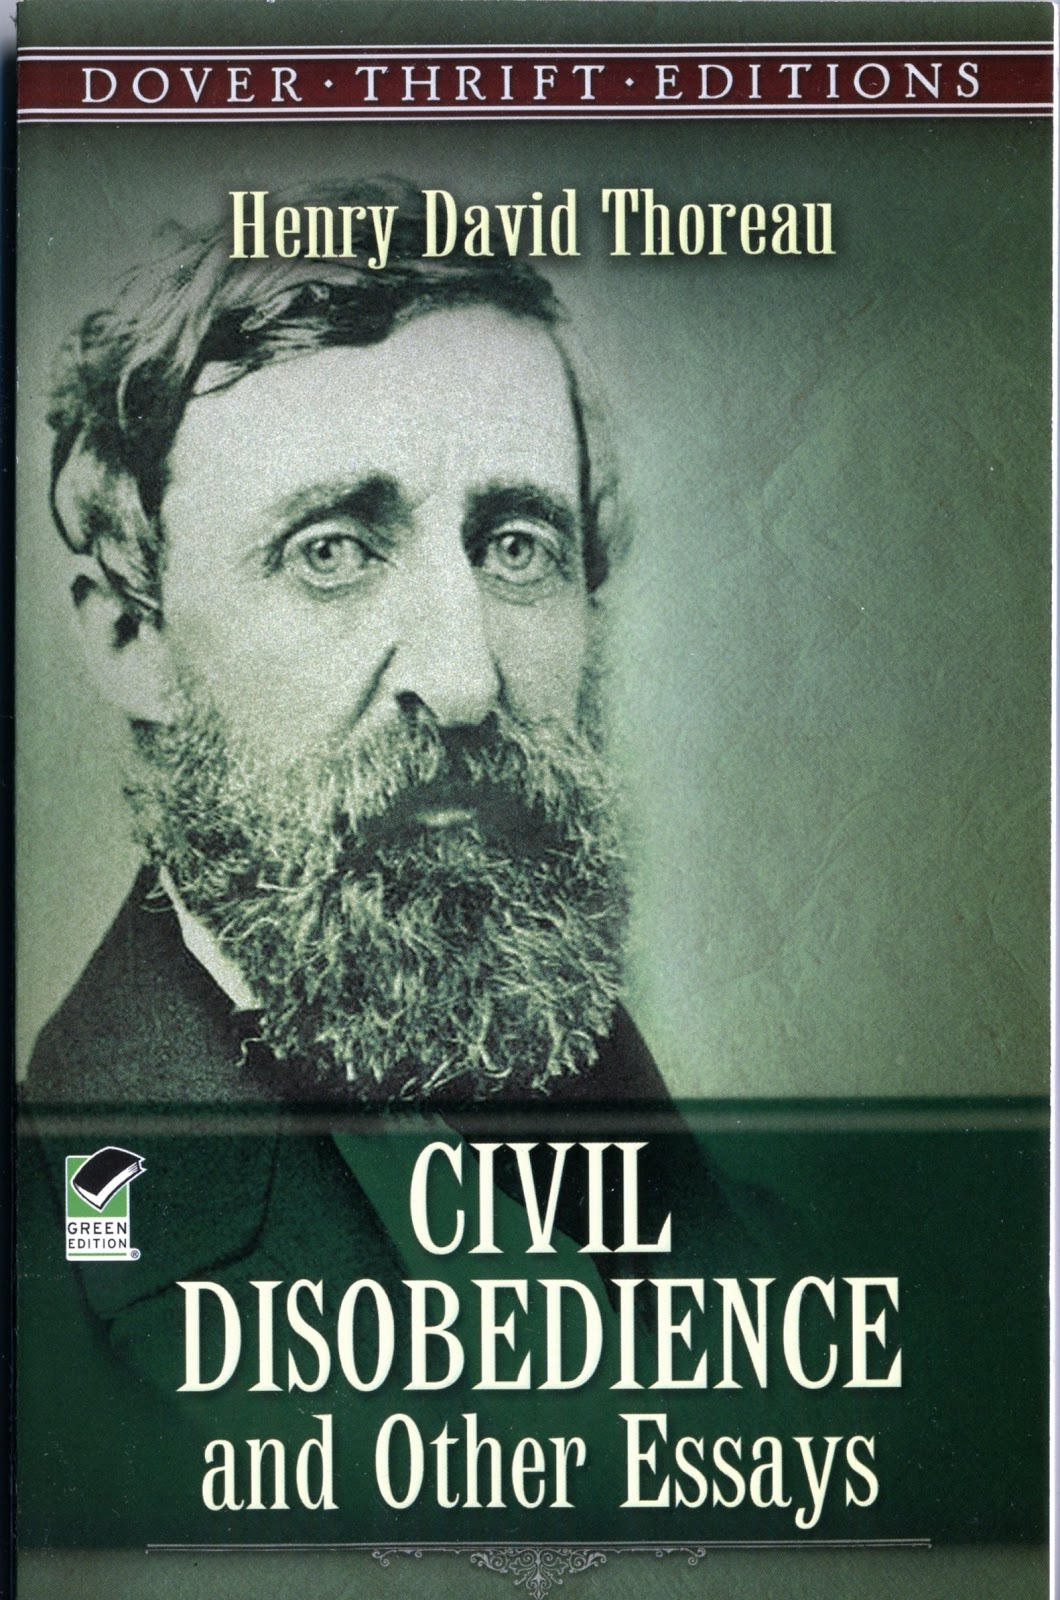 The Th Kind Of Madness Thoreau Civil Disobedience Thoreau Civil Disobedience Healthy Living Essay also High School Entrance Essay Samples High School Vs College Essay Compare And Contrast